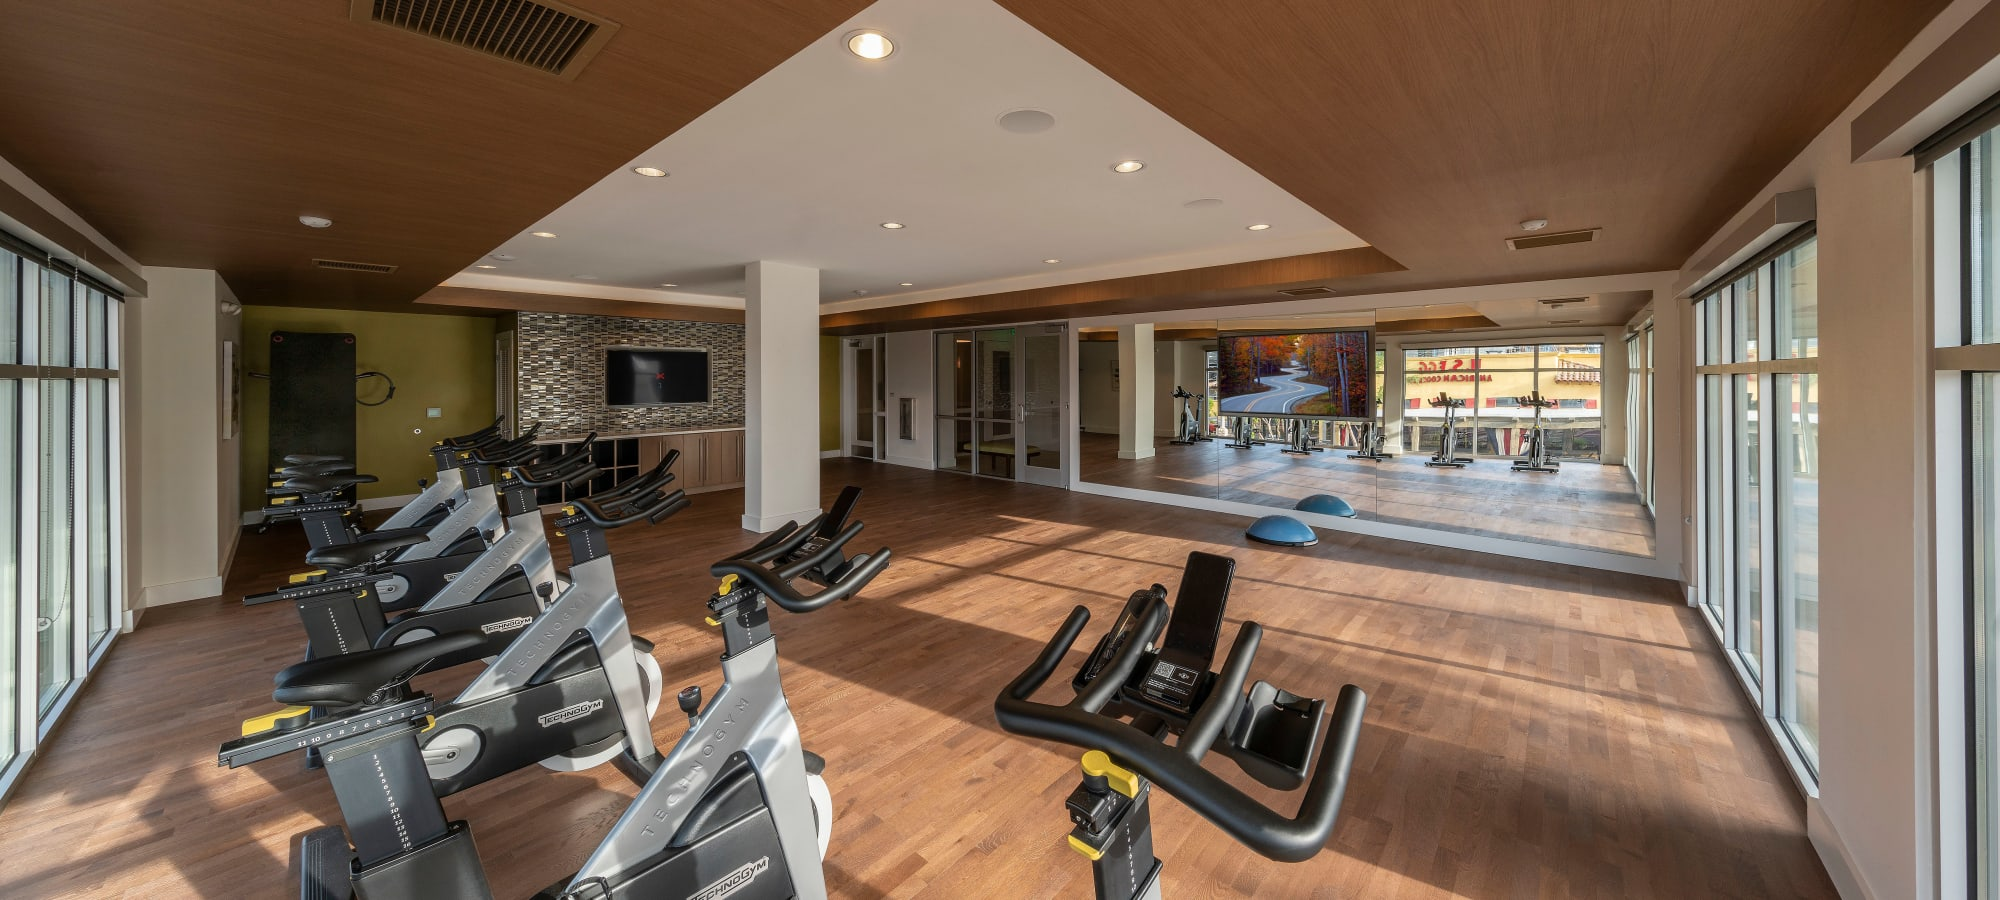 Well-equipped fitness center at Carter in Scottsdale, Arizona